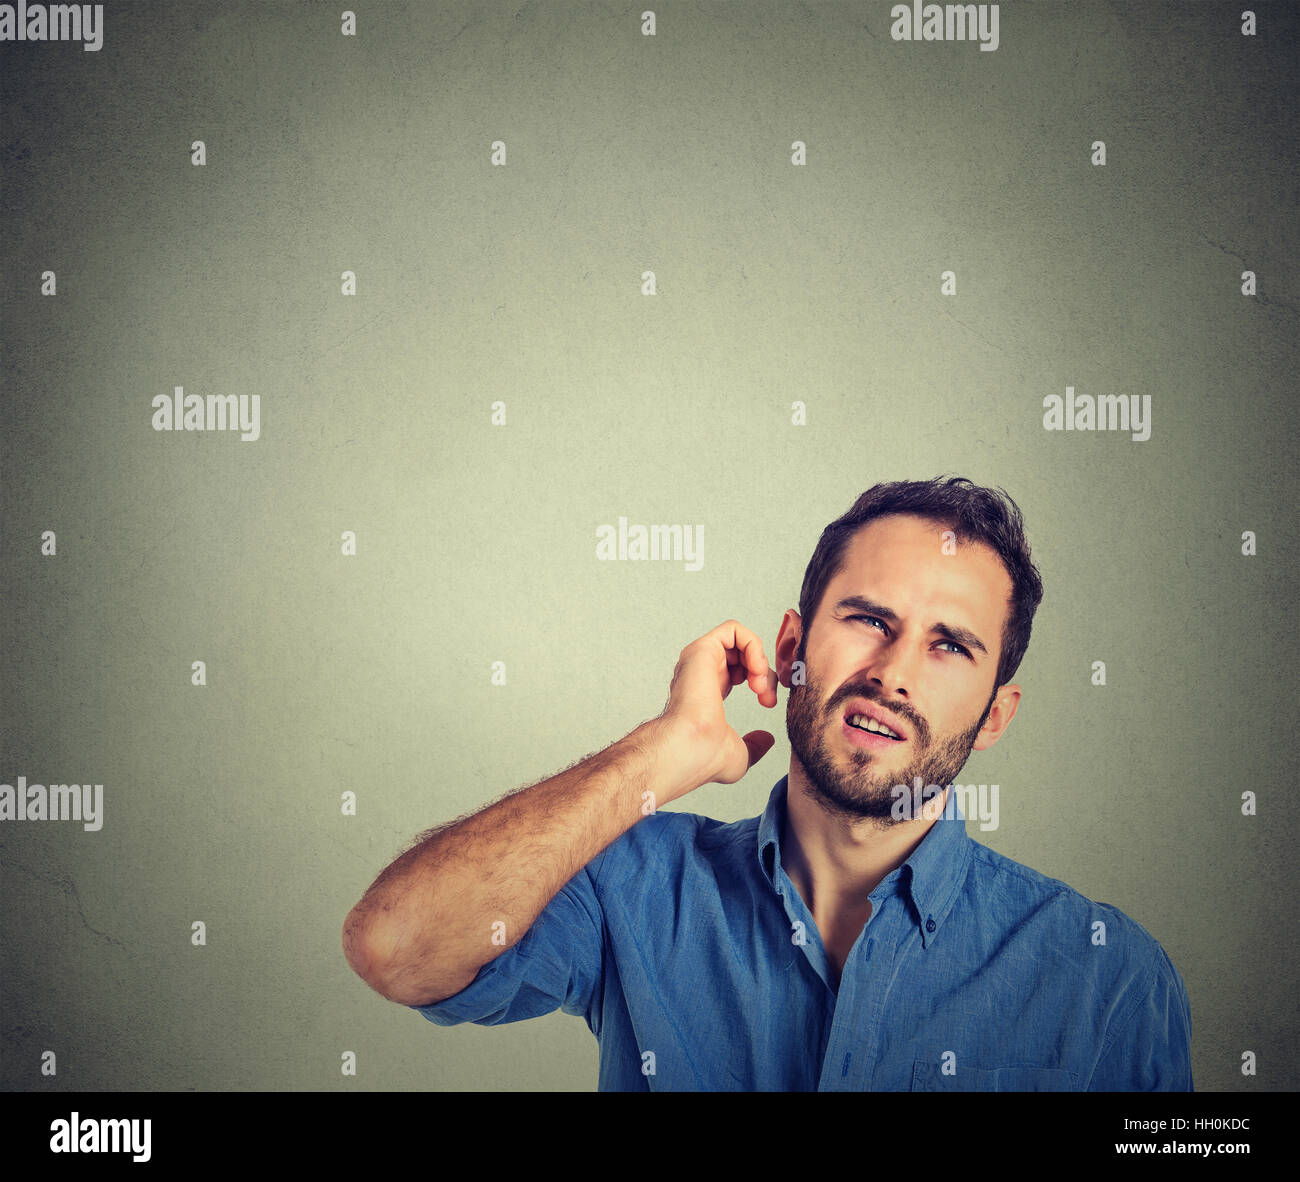 man scratching head, thinking deeply about something, looking up, isolated on gray background. Human facial expression, - Stock Image